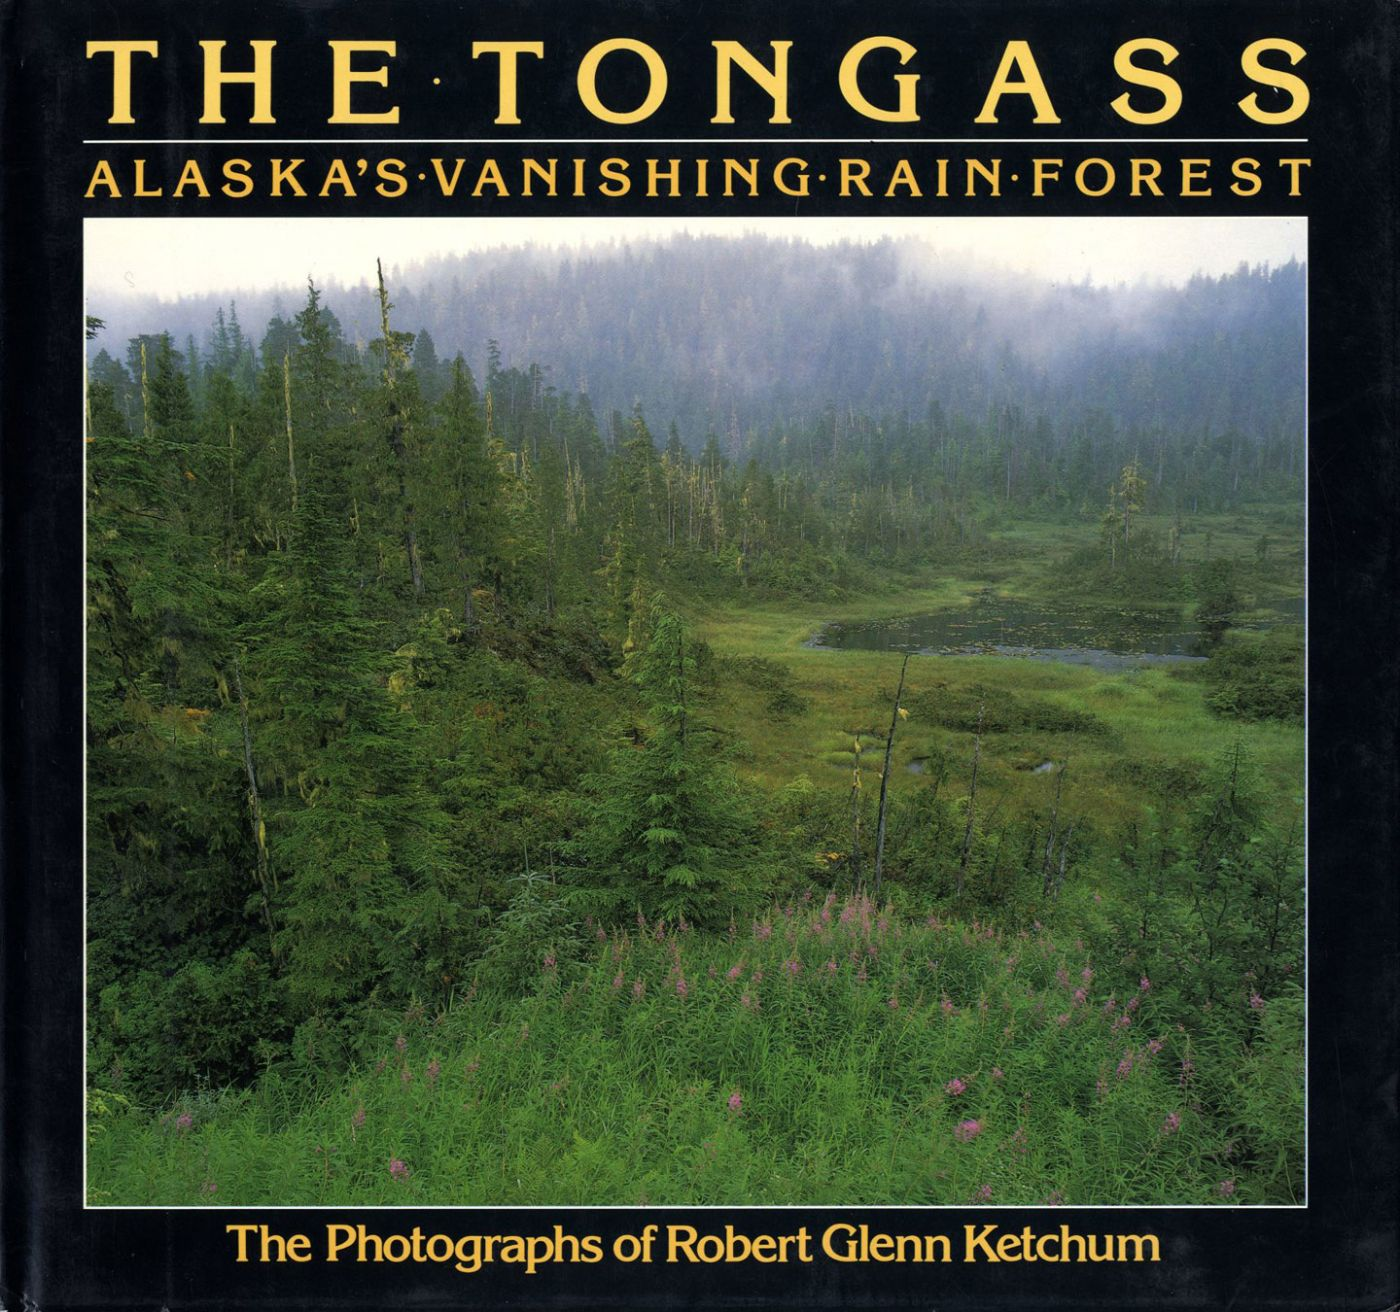 The Tongass: Alaska's Vanishing Rain Forest - The photographs of Robert Glenn Ketchum [SIGNED ASSOCIATION COPY]